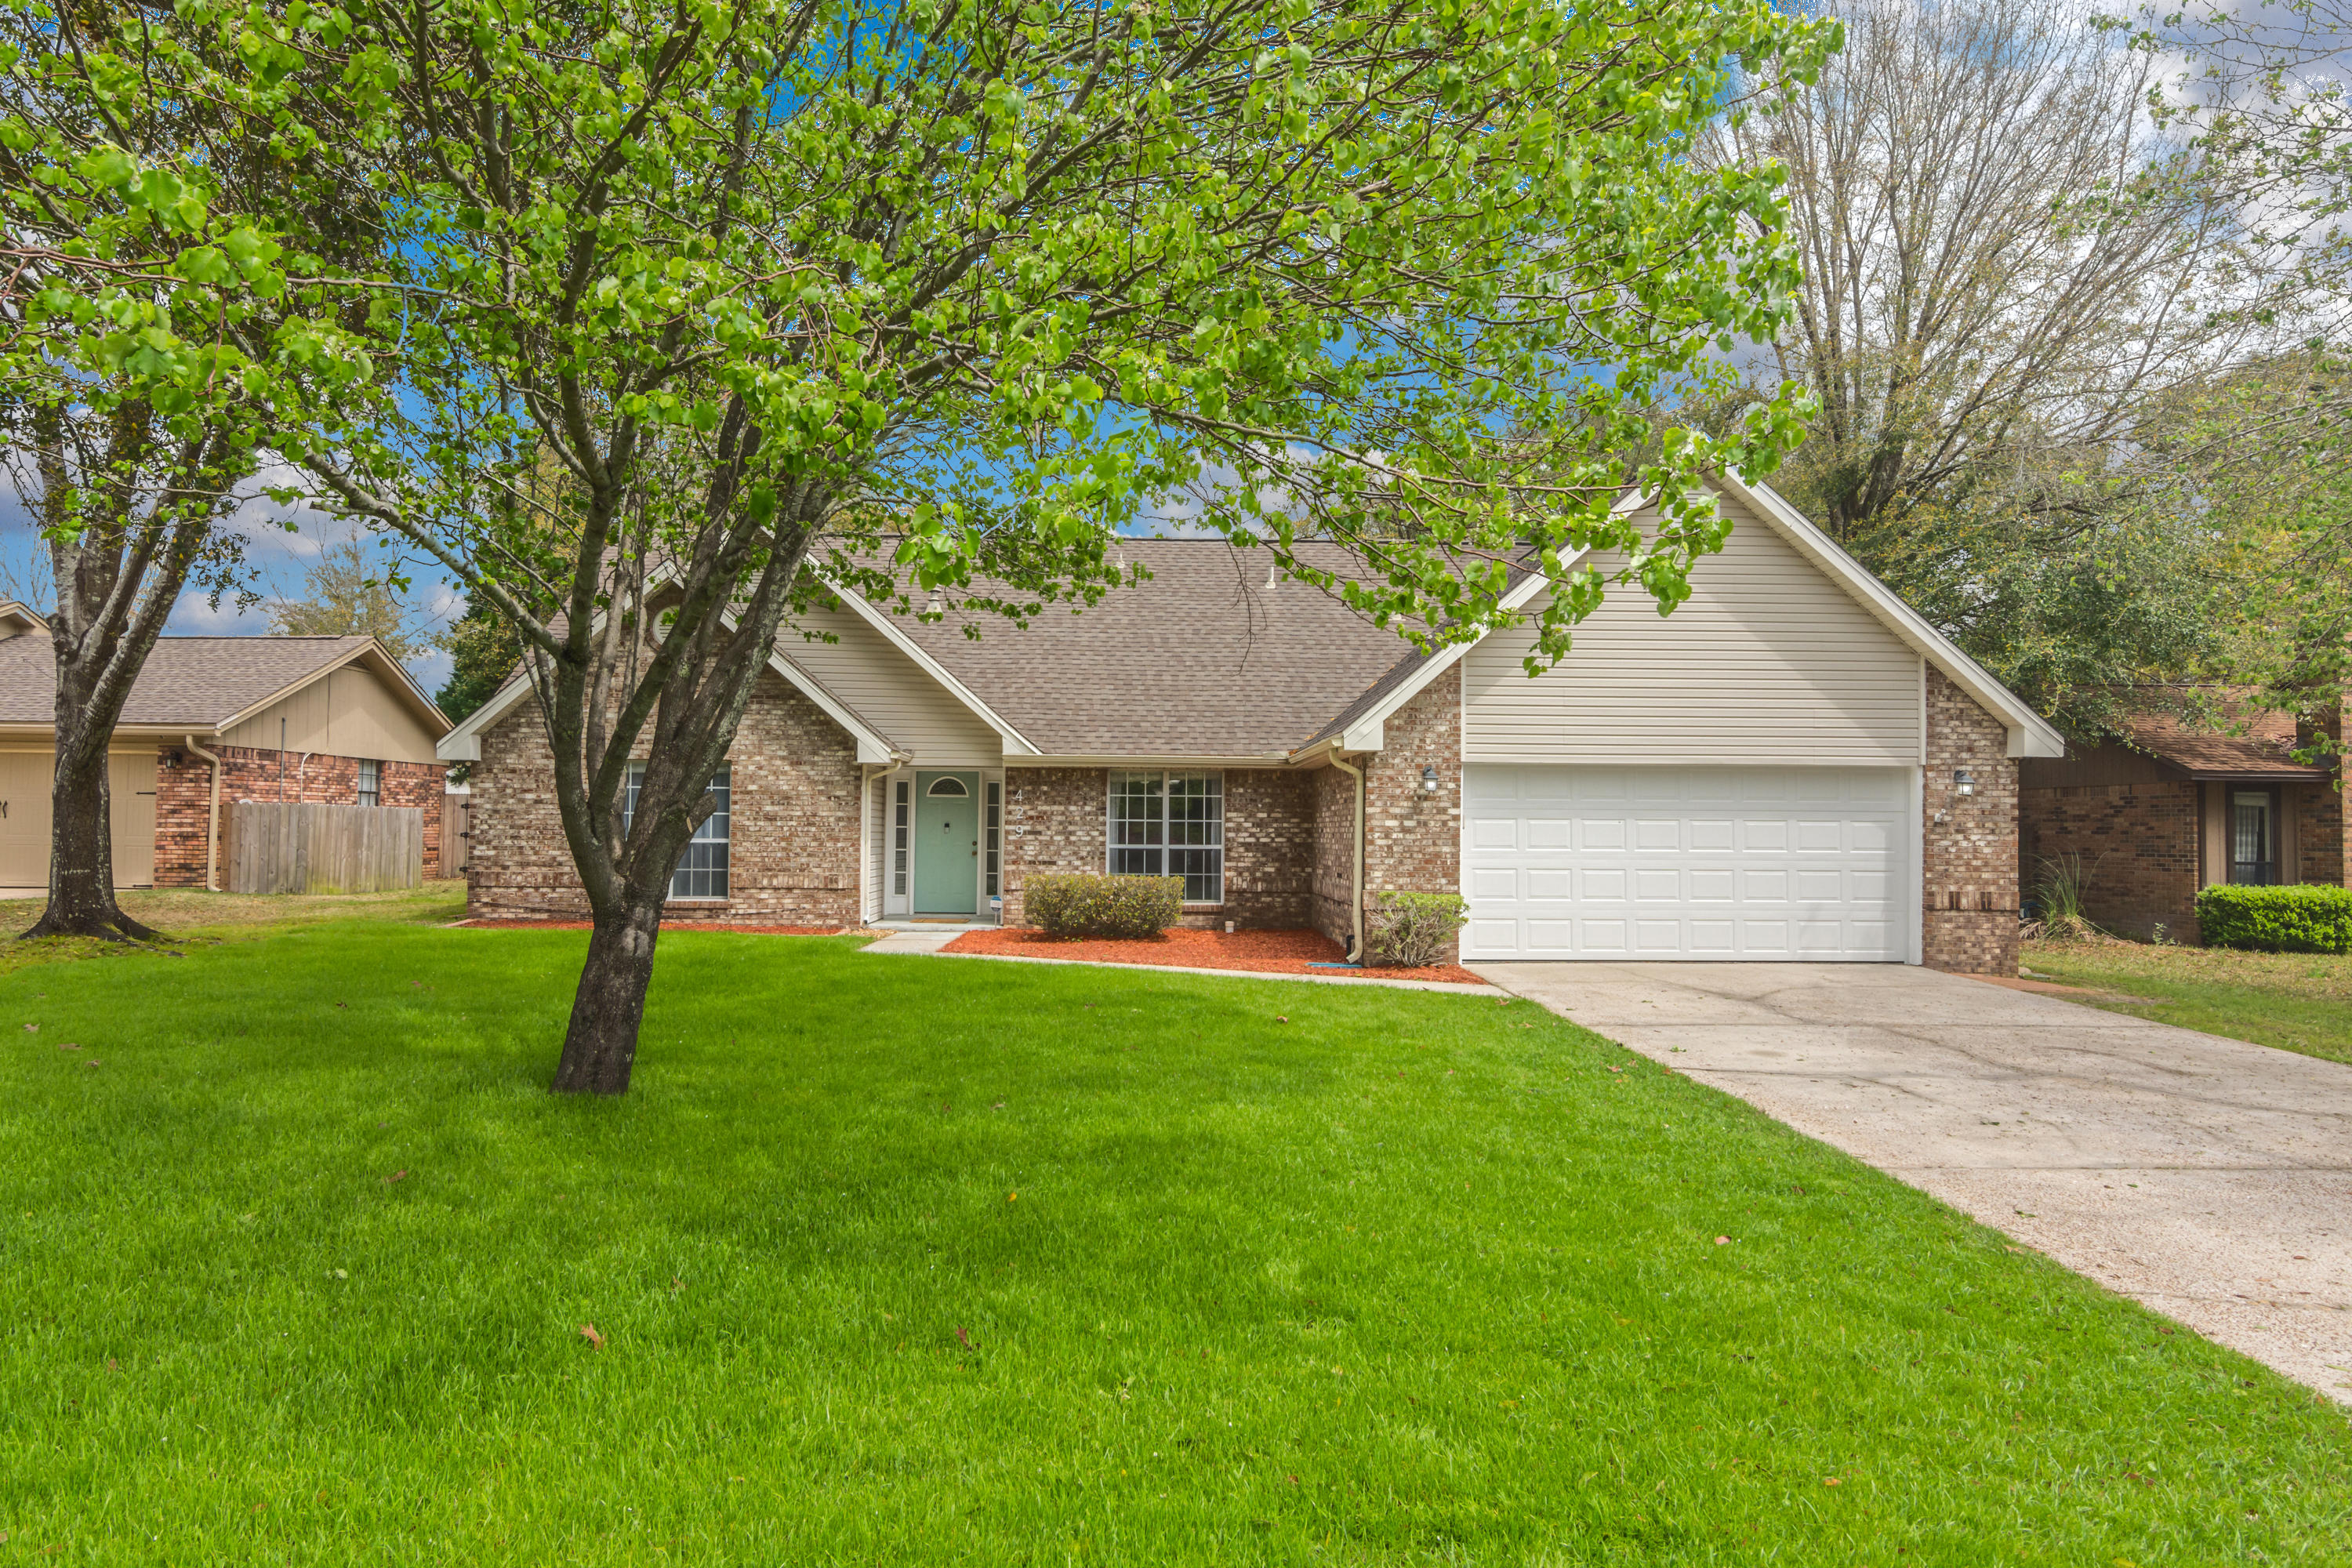 Photo of home for sale at 429 Barbados, Niceville FL